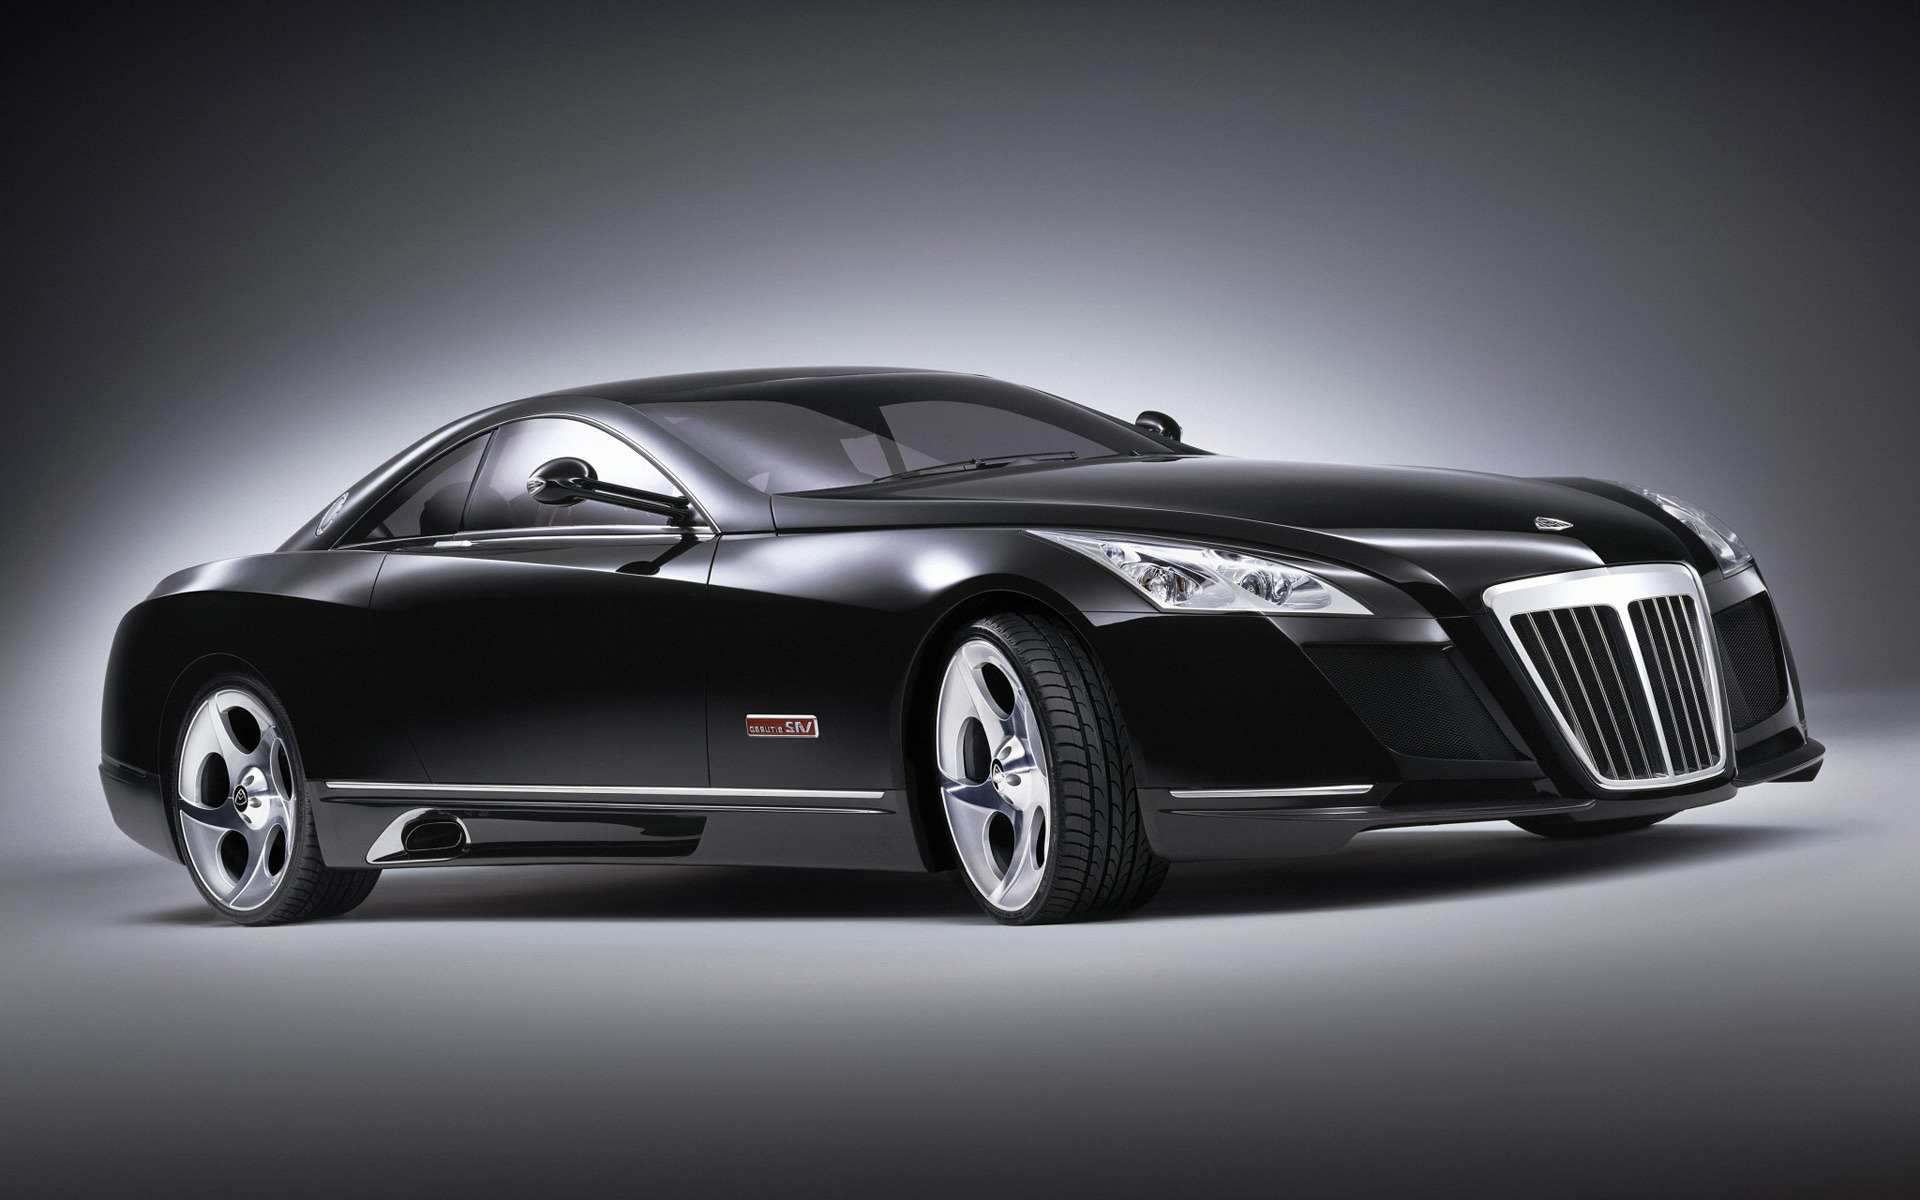 2005 Maybach Exelero Mercedes Benz